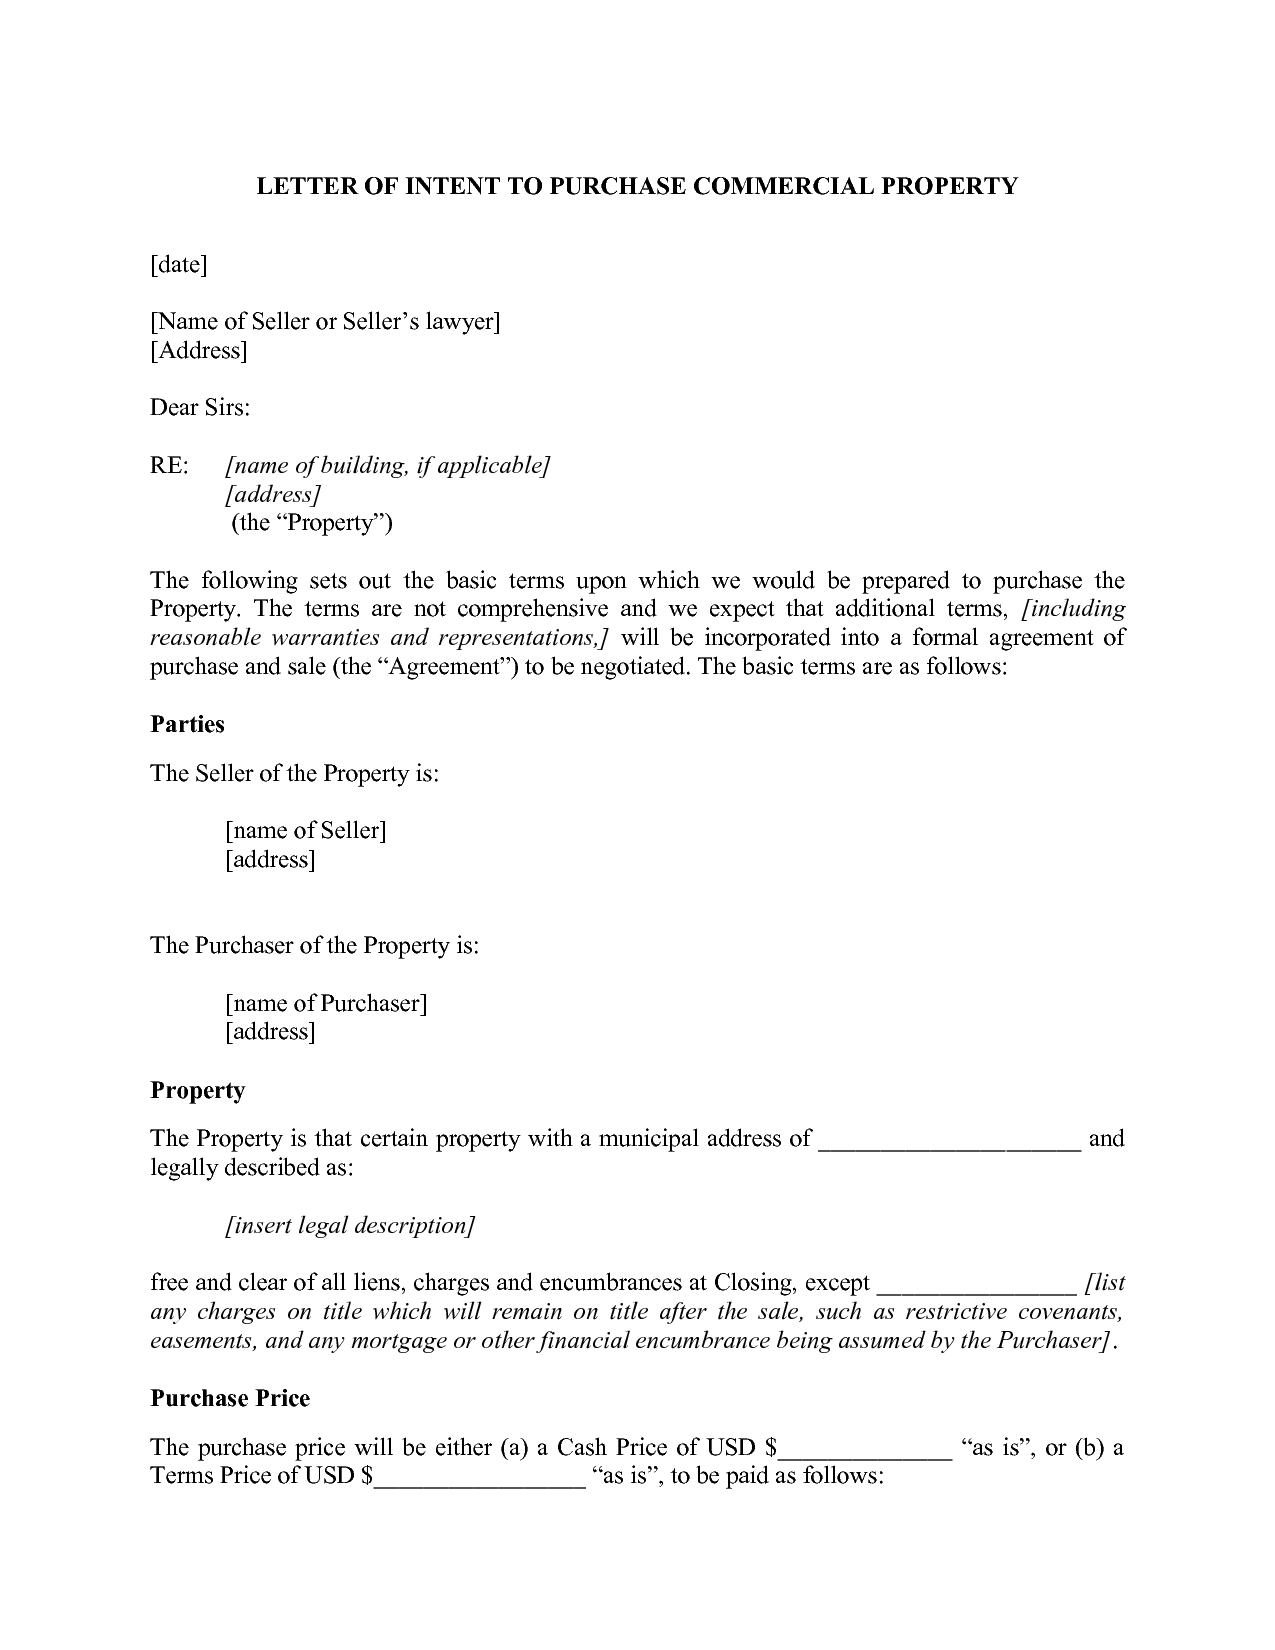 commercial real estate lease letter of intent template Collection-Letter Intent Real Estate Lease mercial To Property Form Residential 3-n